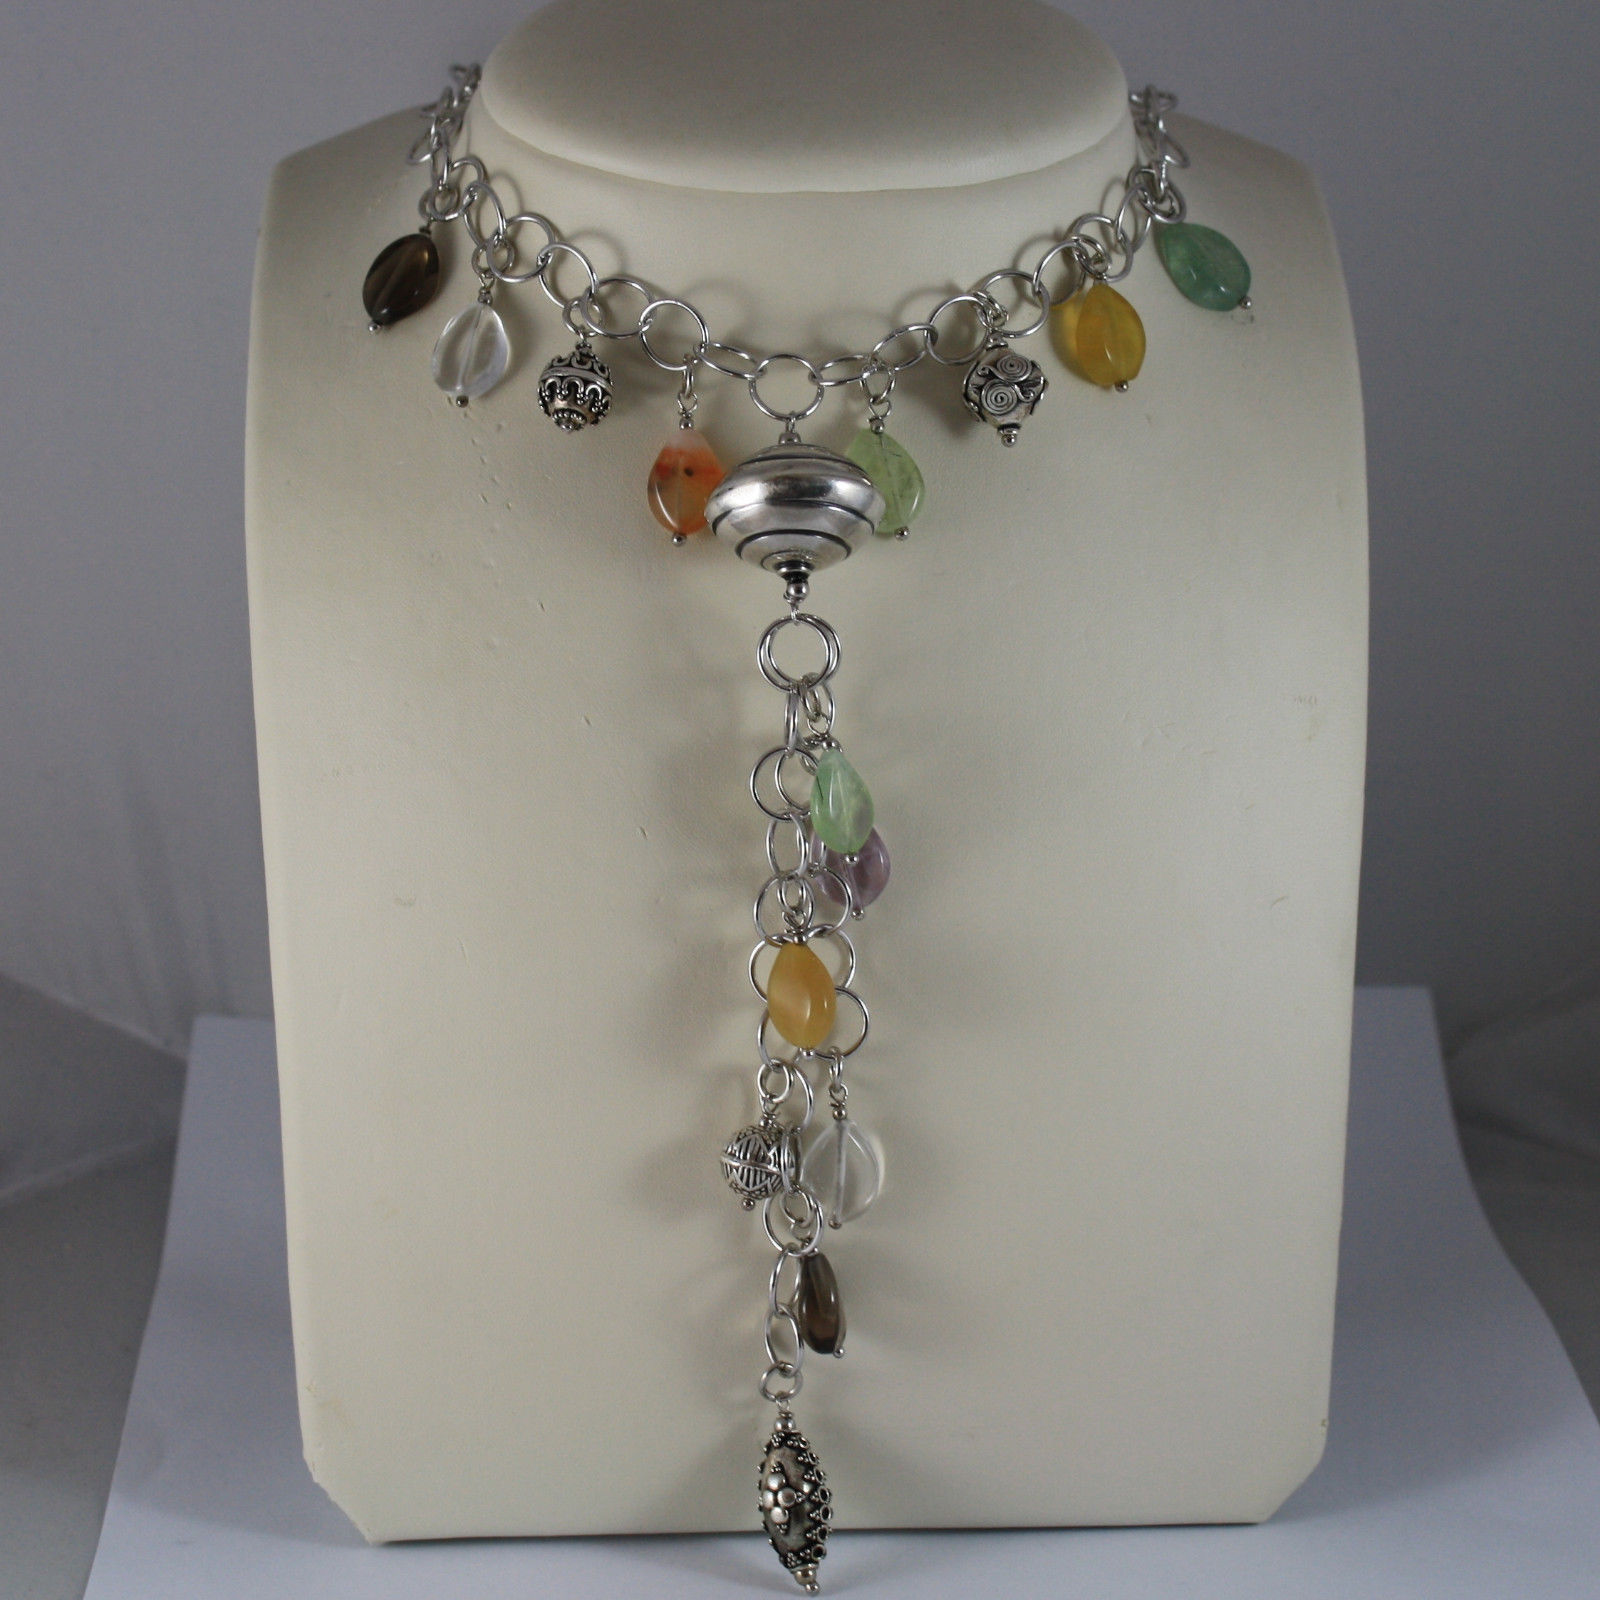 .925 RHODIUM SILVER NECKLACE WITH JADE, QUARTZ, AMETHYST AND CHARMS